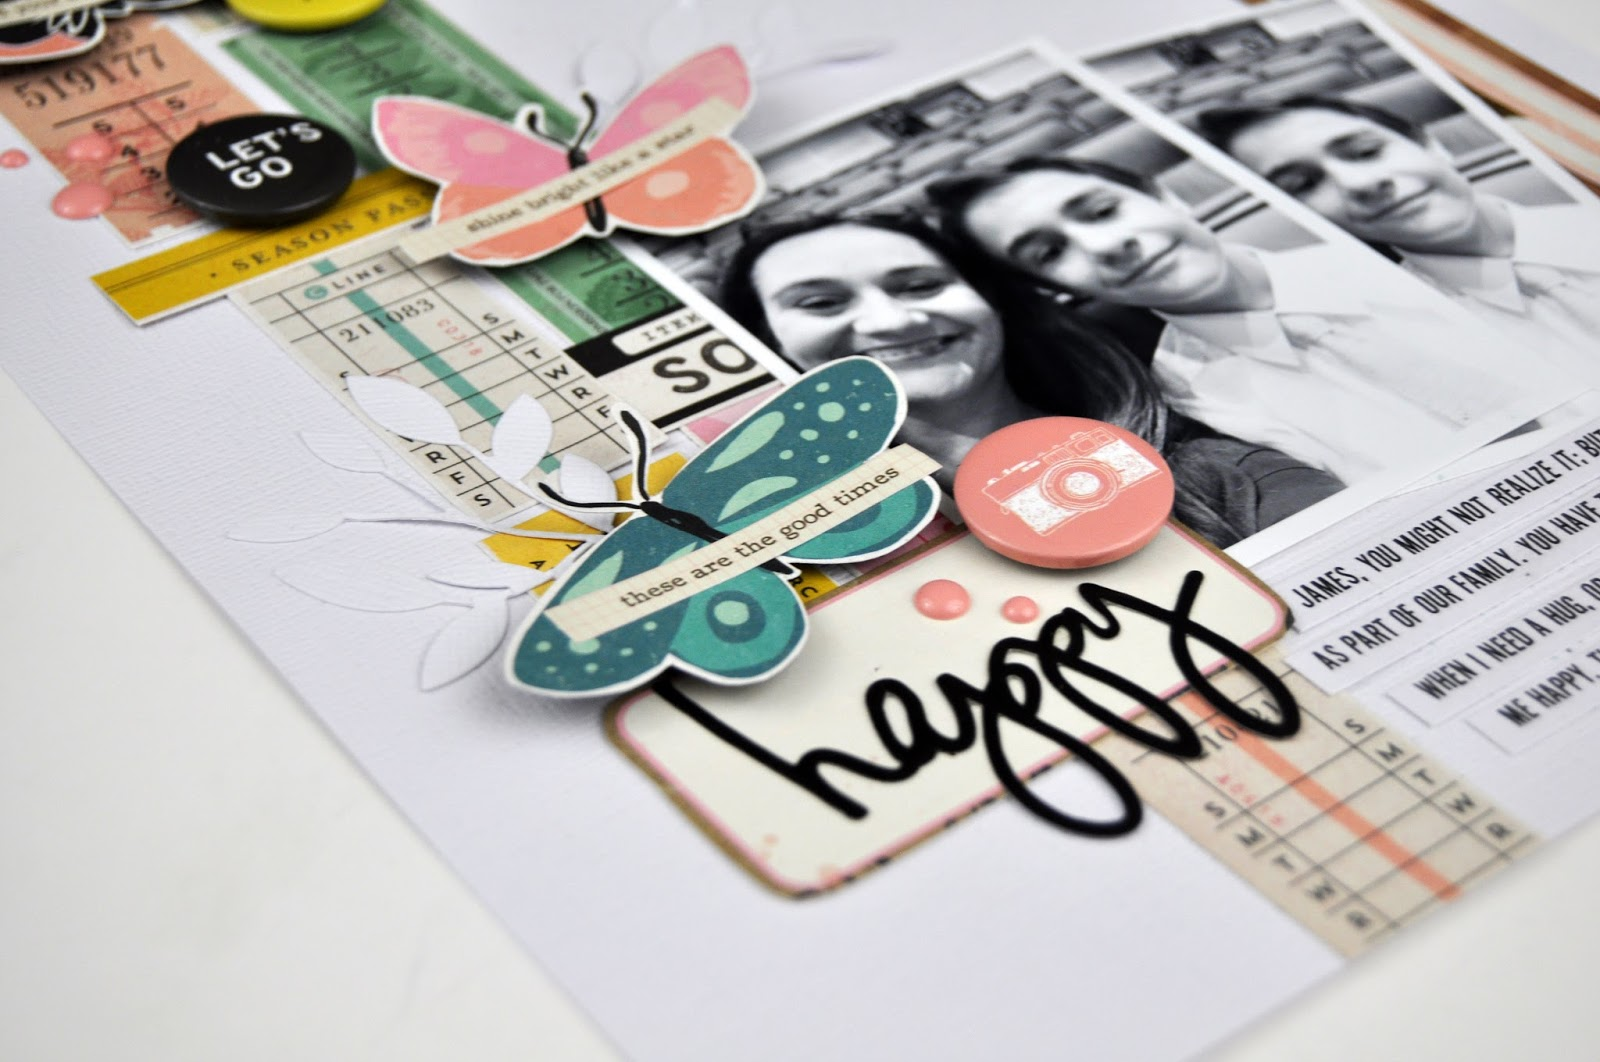 Memories Made #61: Scrapbooking Process Video by www.jengallacher.com. Includes YouTube video. #scrapbooking #scrapbookprocess #jengallacher